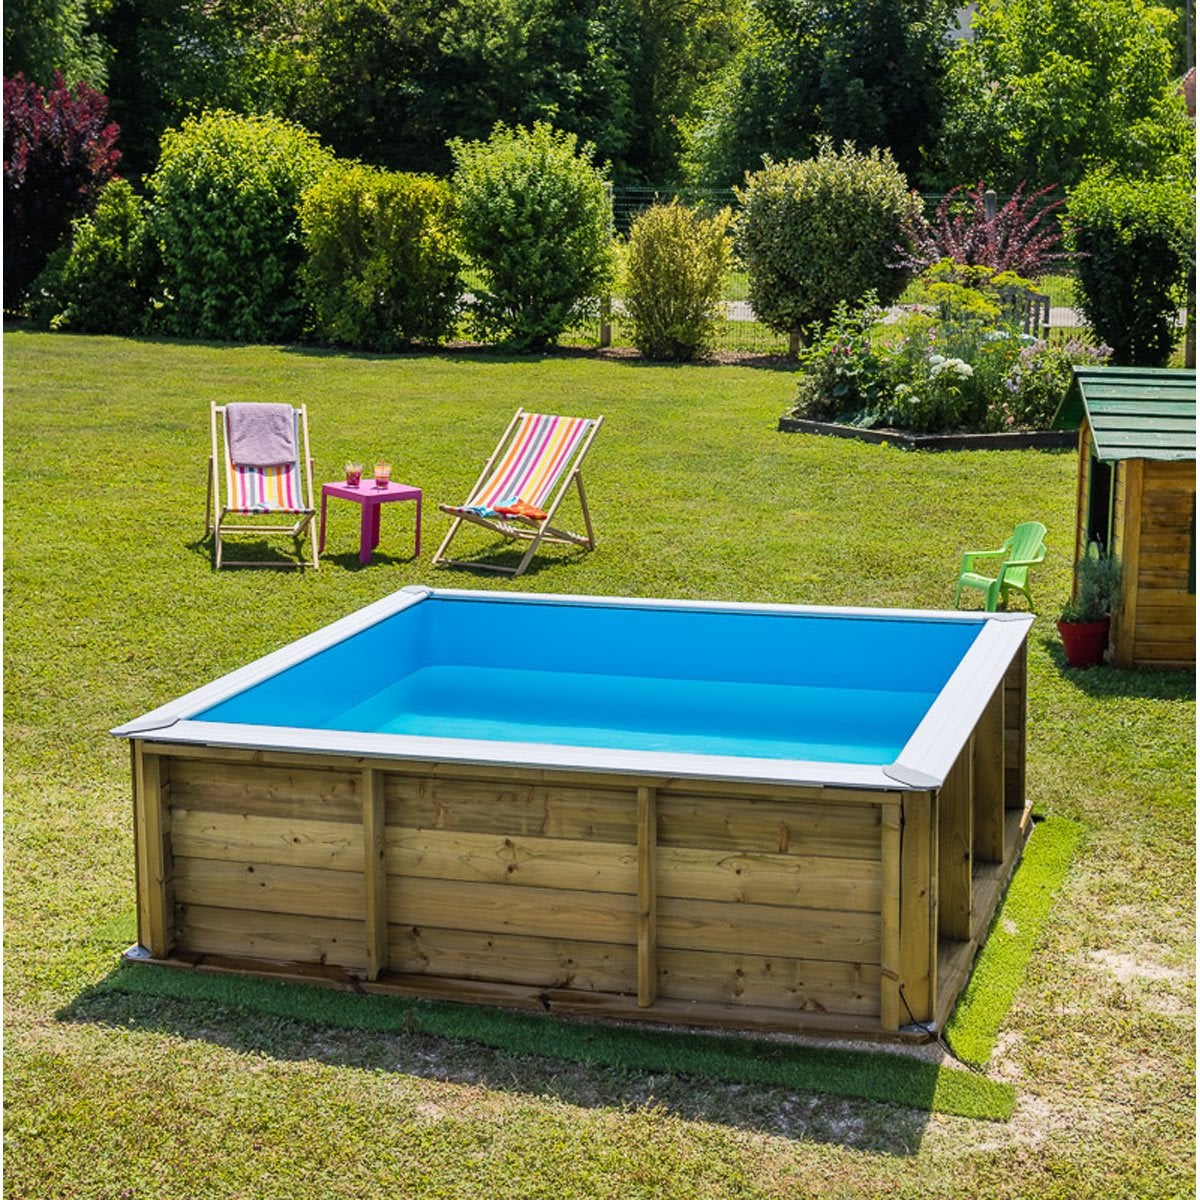 Piscine bois hors sol idees de decoration for Piscine en tole pas cher